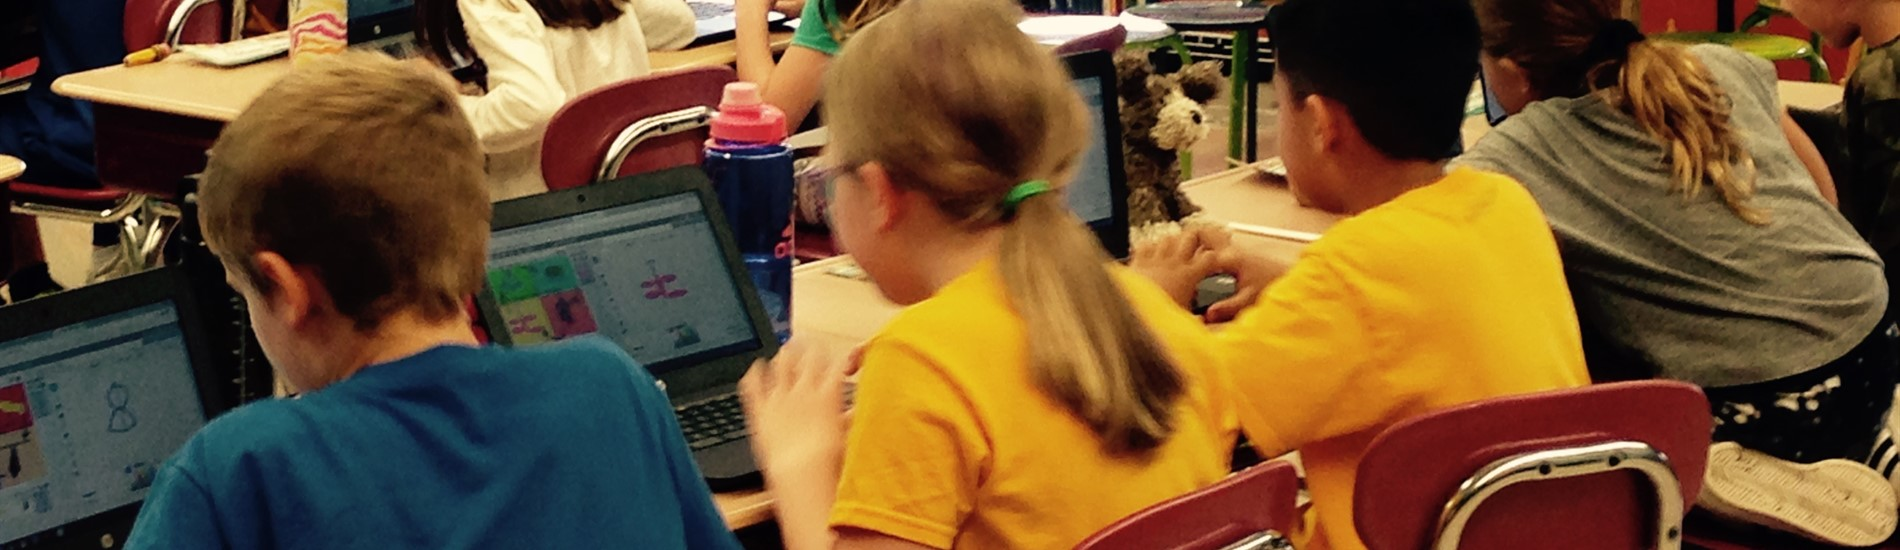 Students coding on Chrome books